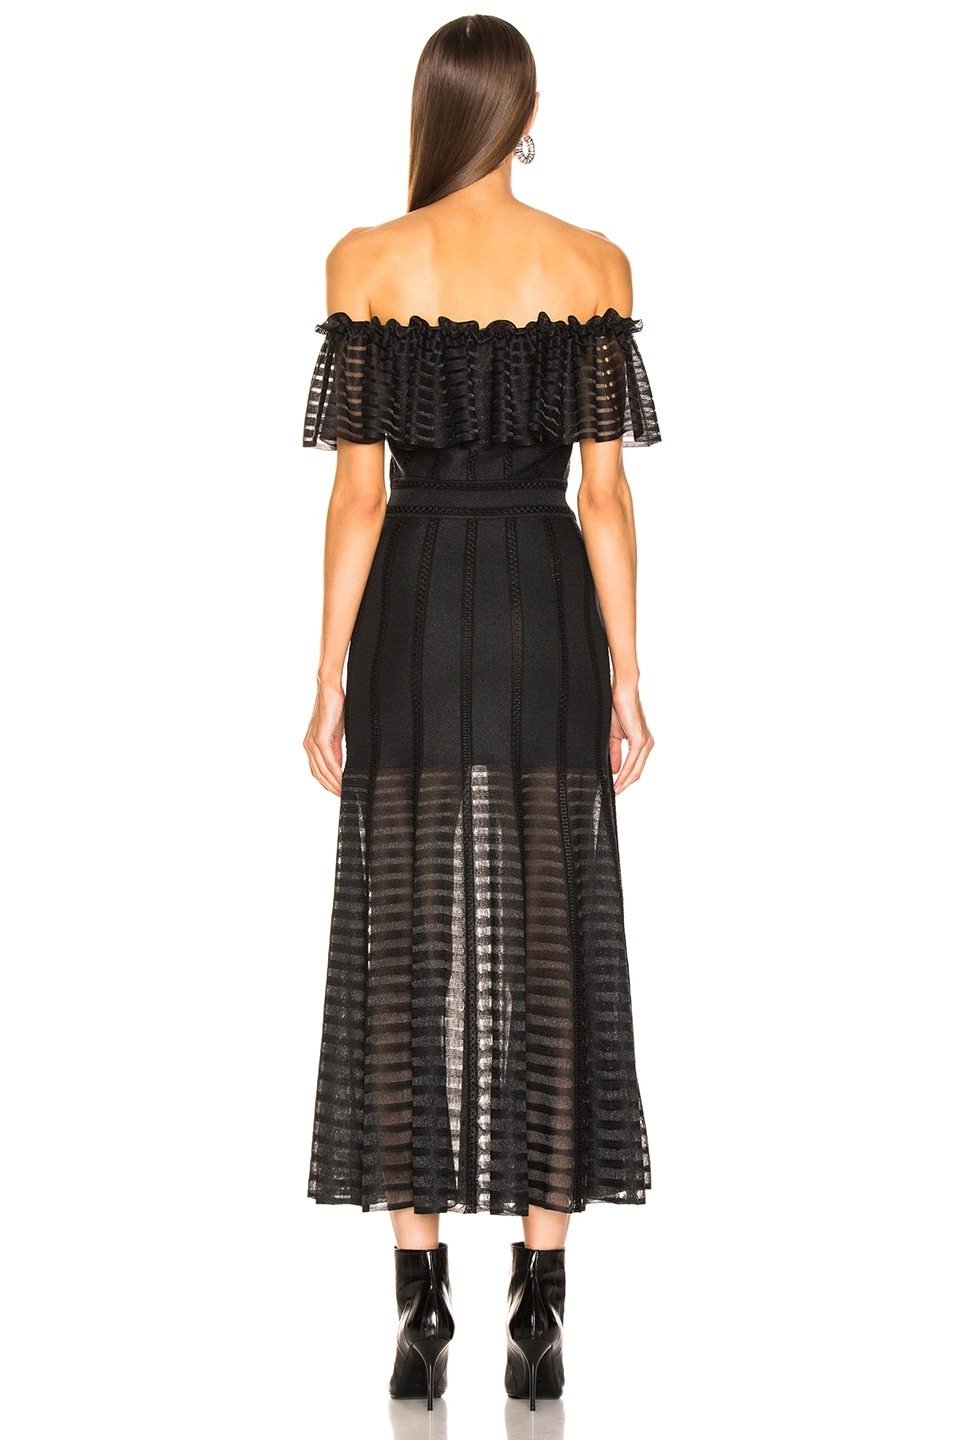 Image 3 of Alexander McQueen Off the Shoulder Sheer Dress in Black